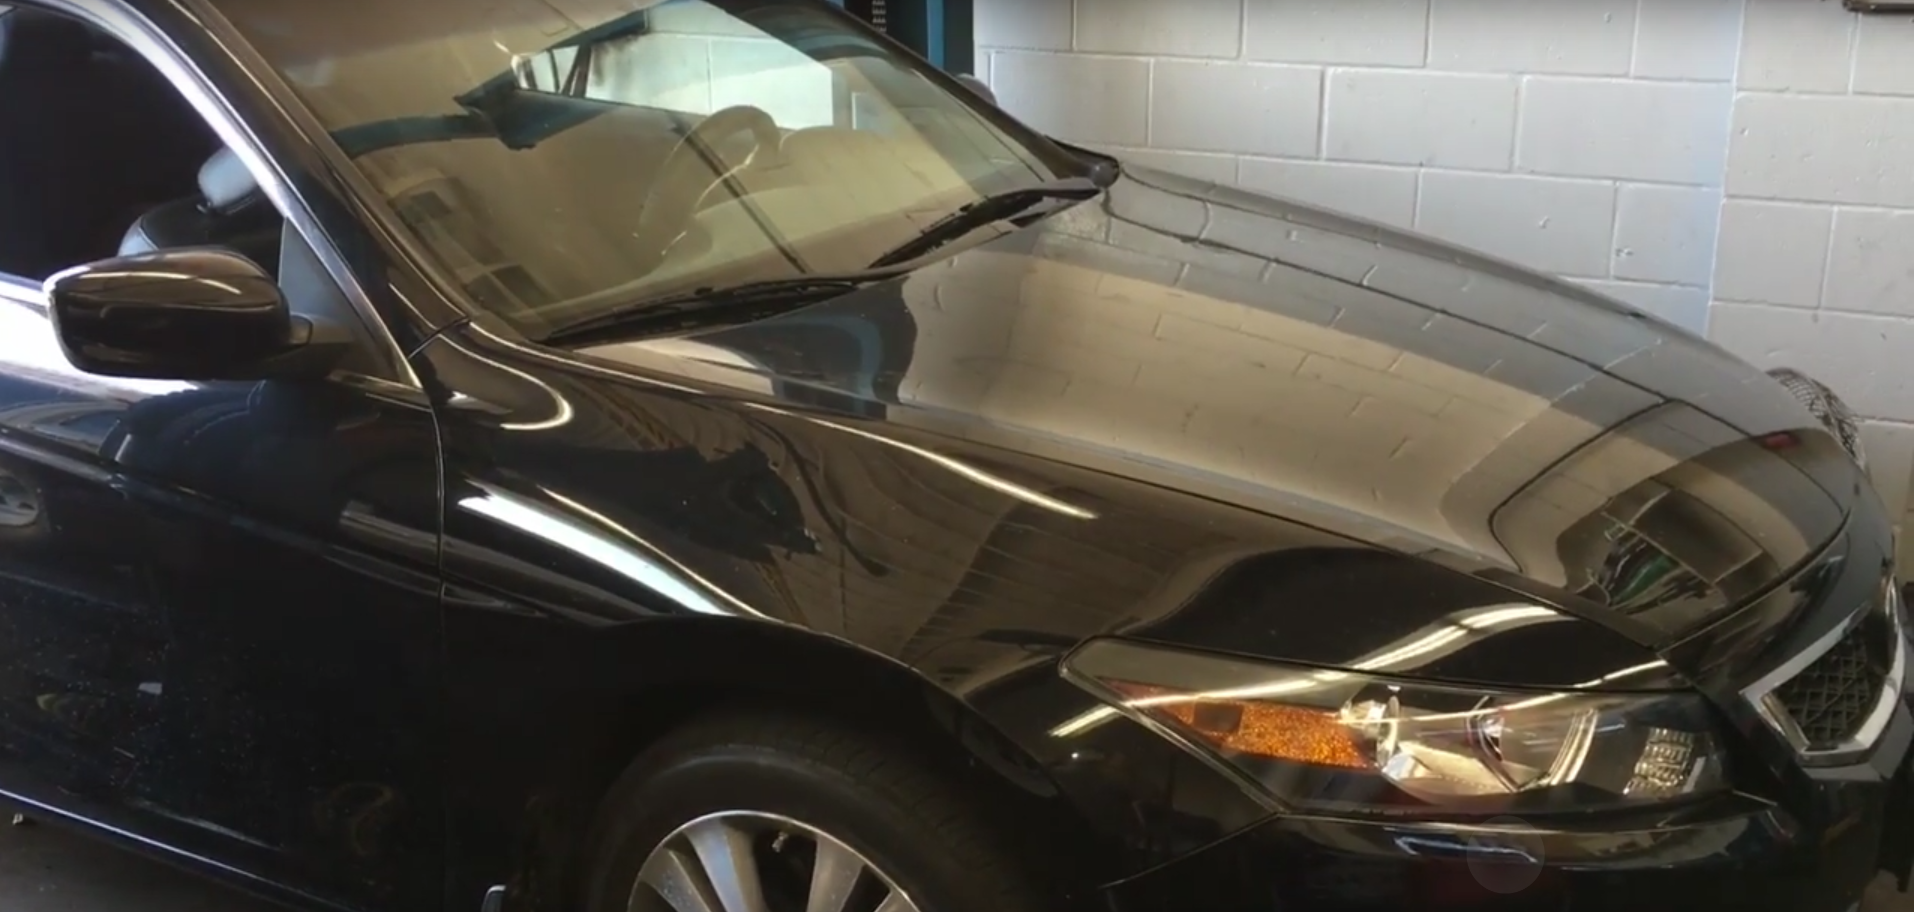 How to Change the Transmission Fluid on a 2008 Honda Accord